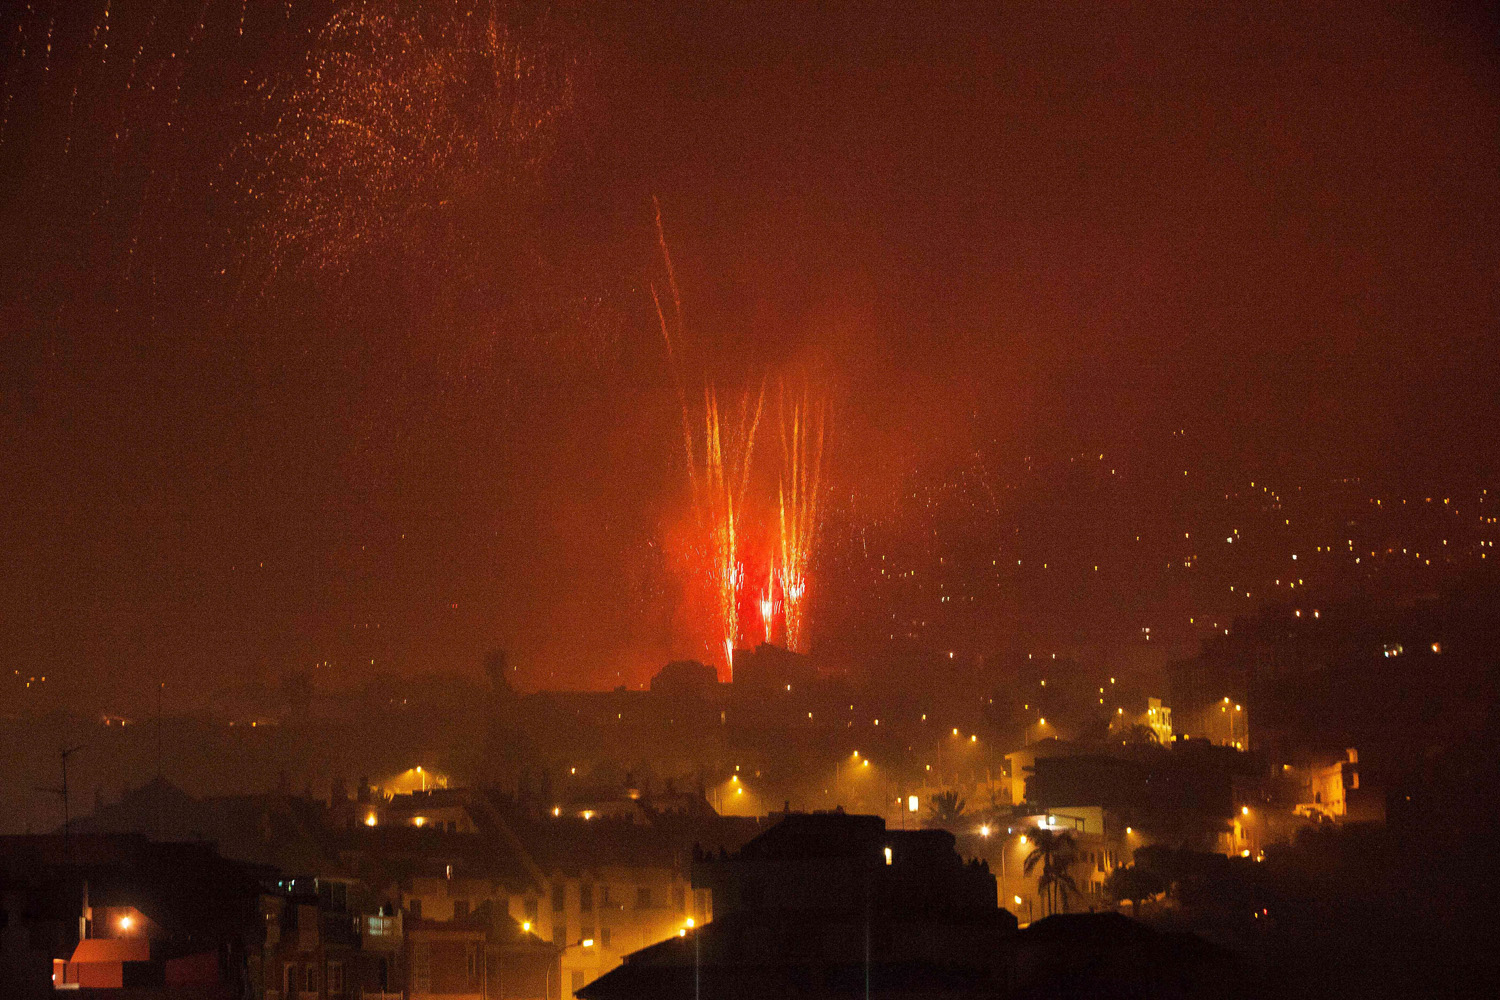 May 3, 2014. A view of fireworks during the Holy Cross day in the village of Los Realejos, on the Spanish canary island of Tenerife.